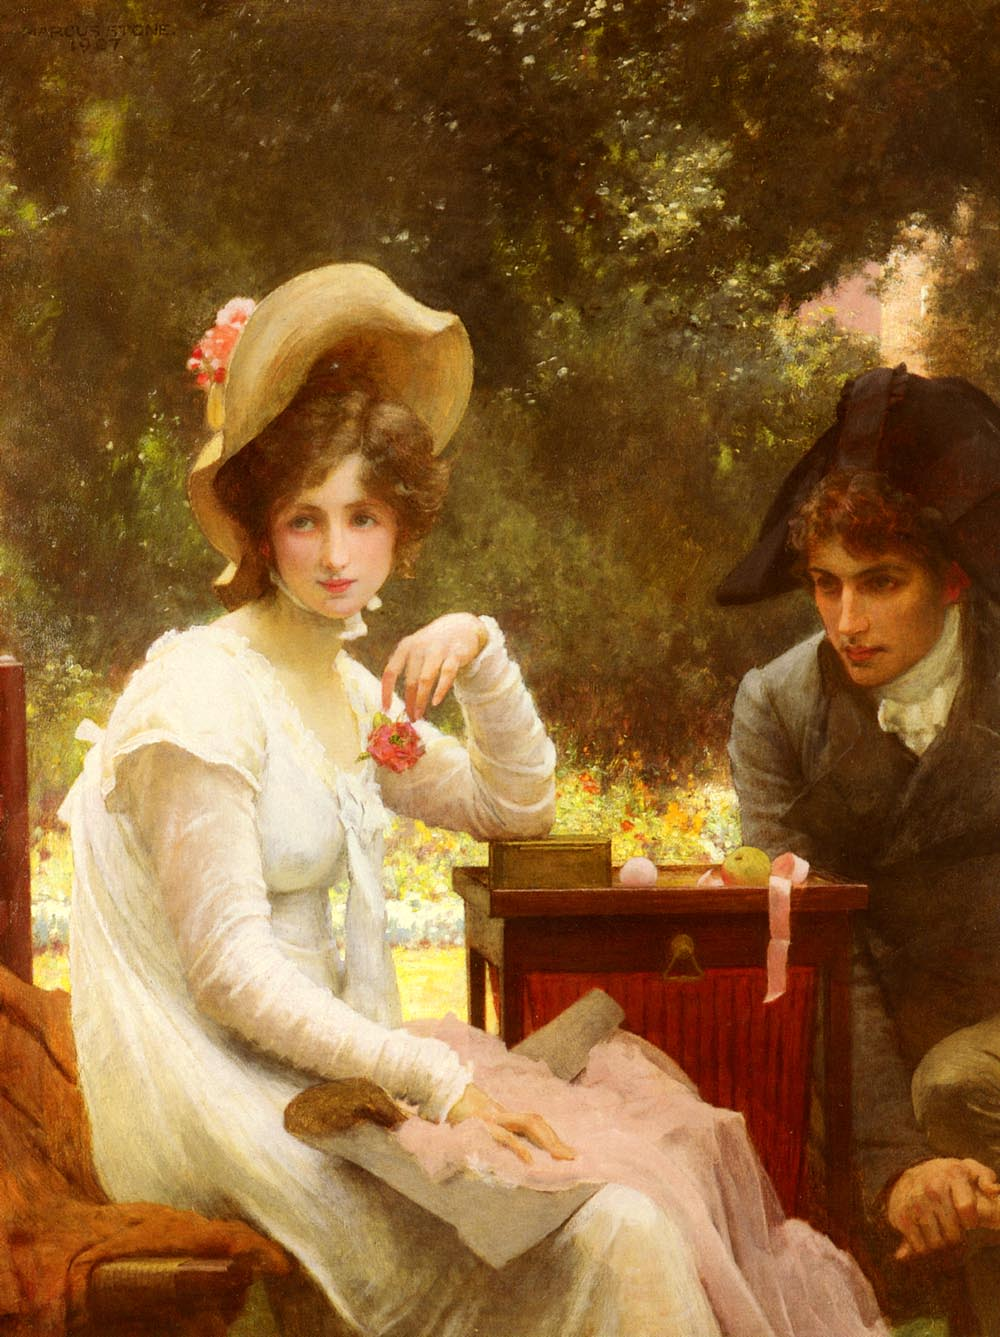 Romantic Era Paintings Of Couples File:Stone Marcus In L...